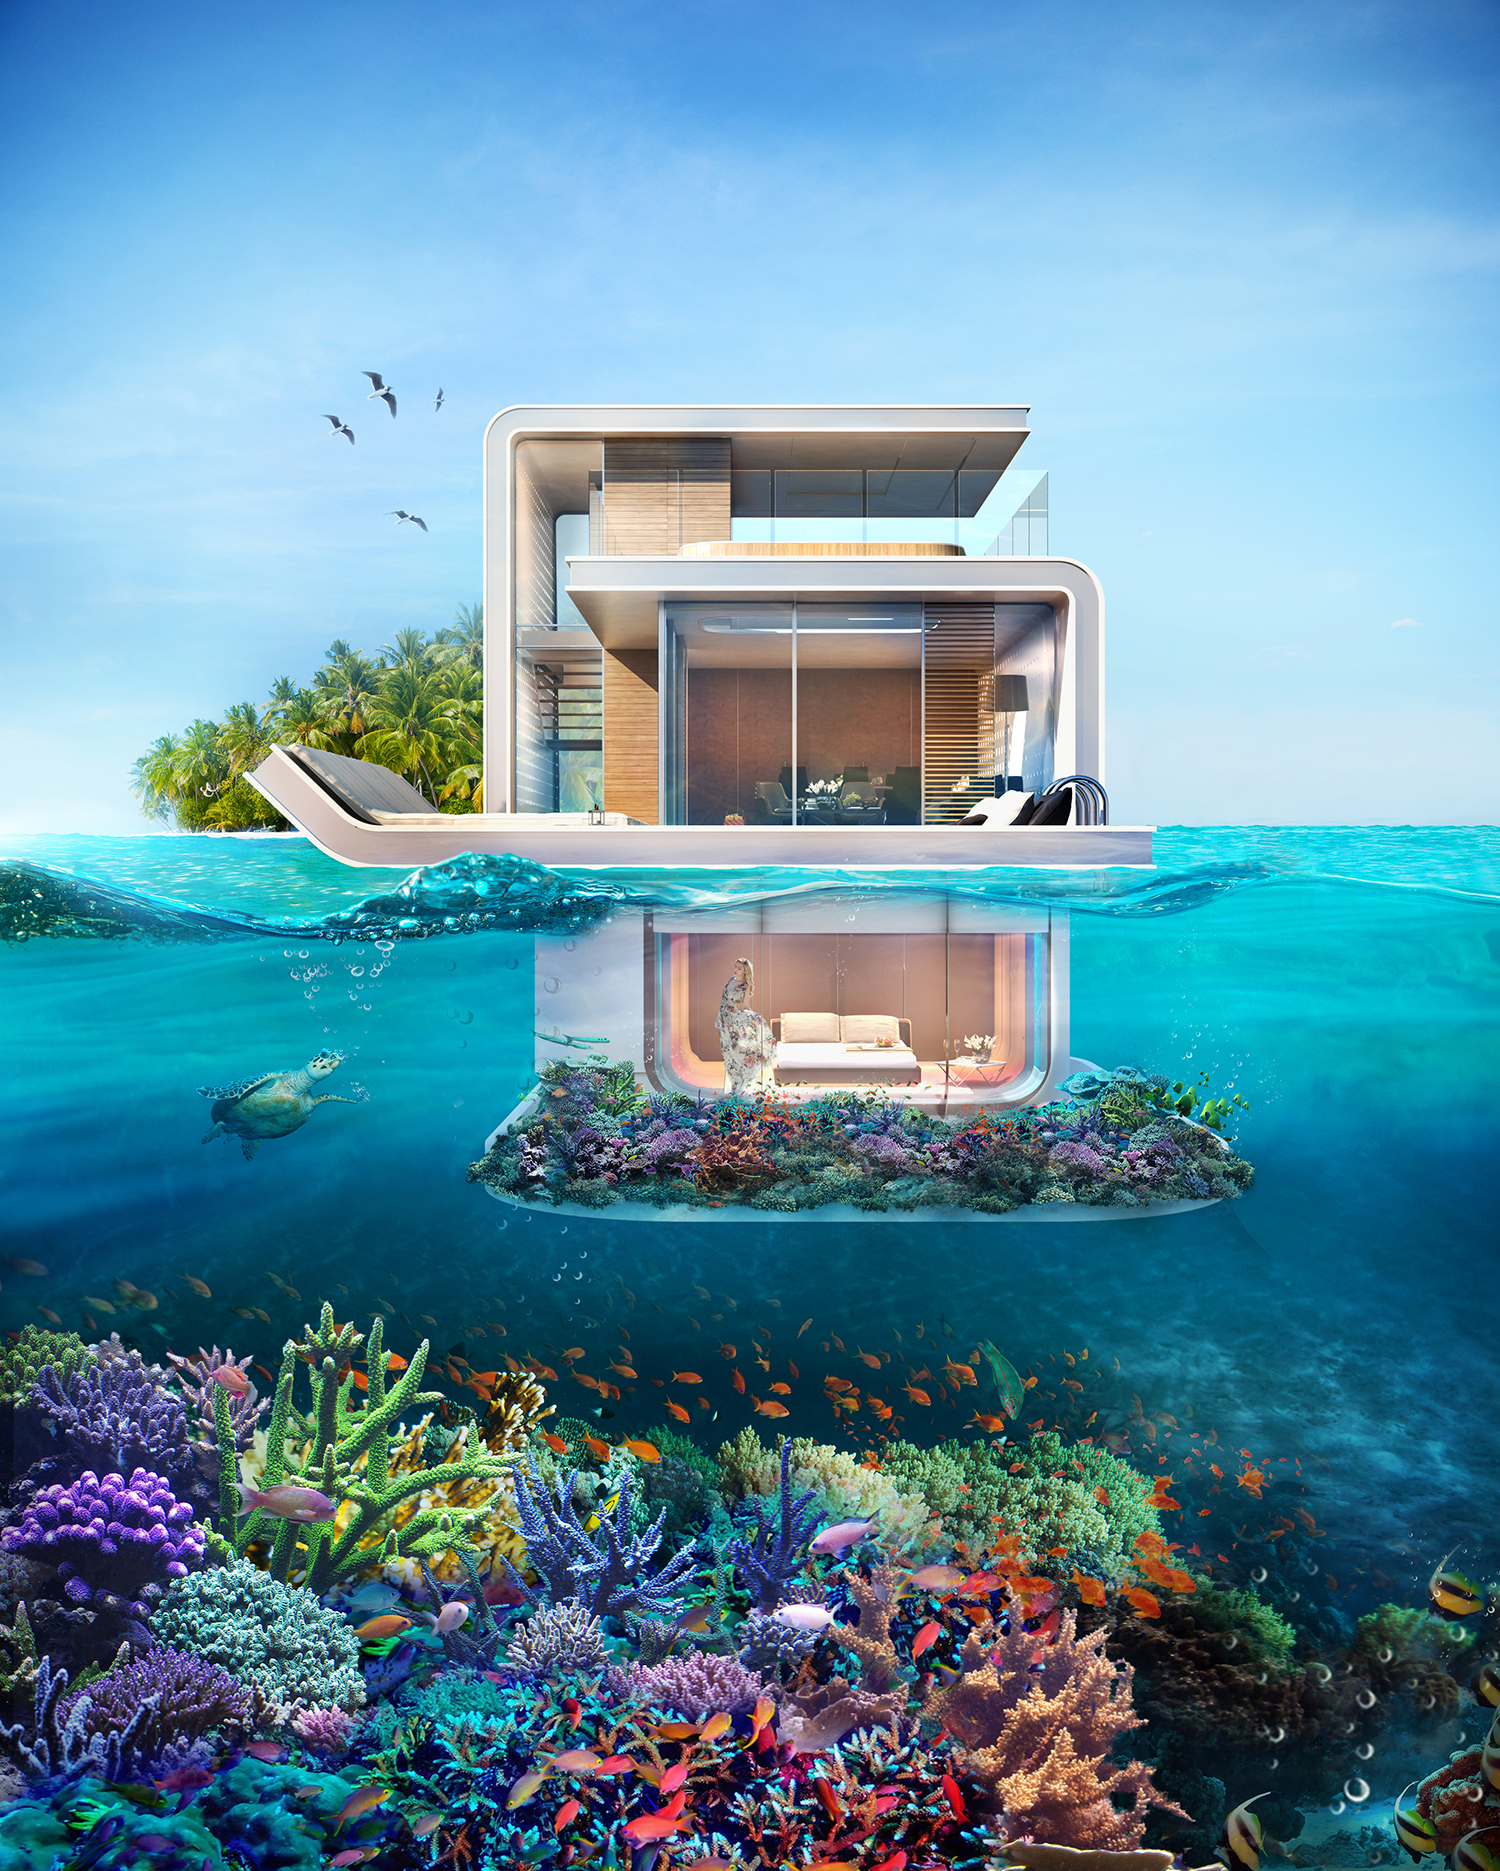 These Futuristic 'Floating Seahorse' Homes Are Partially Submerged